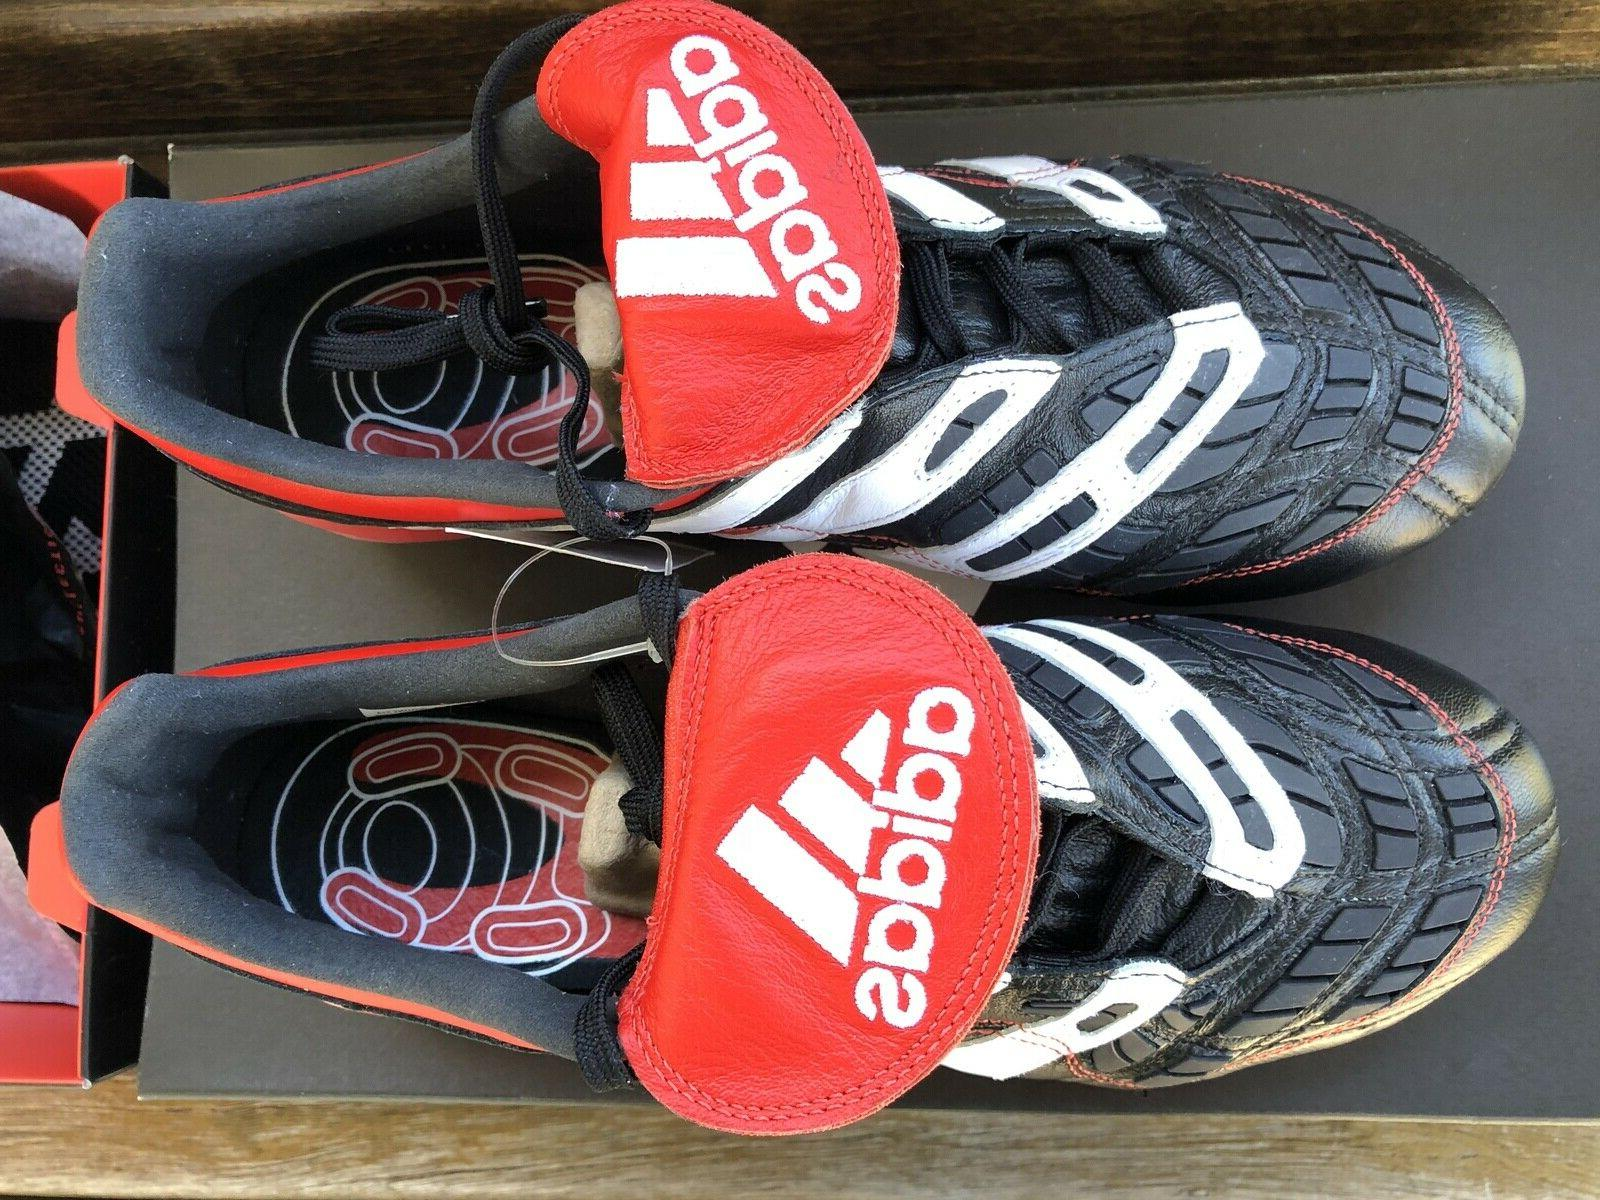 Adidas Accelerator 2018 Black Red Size US 9